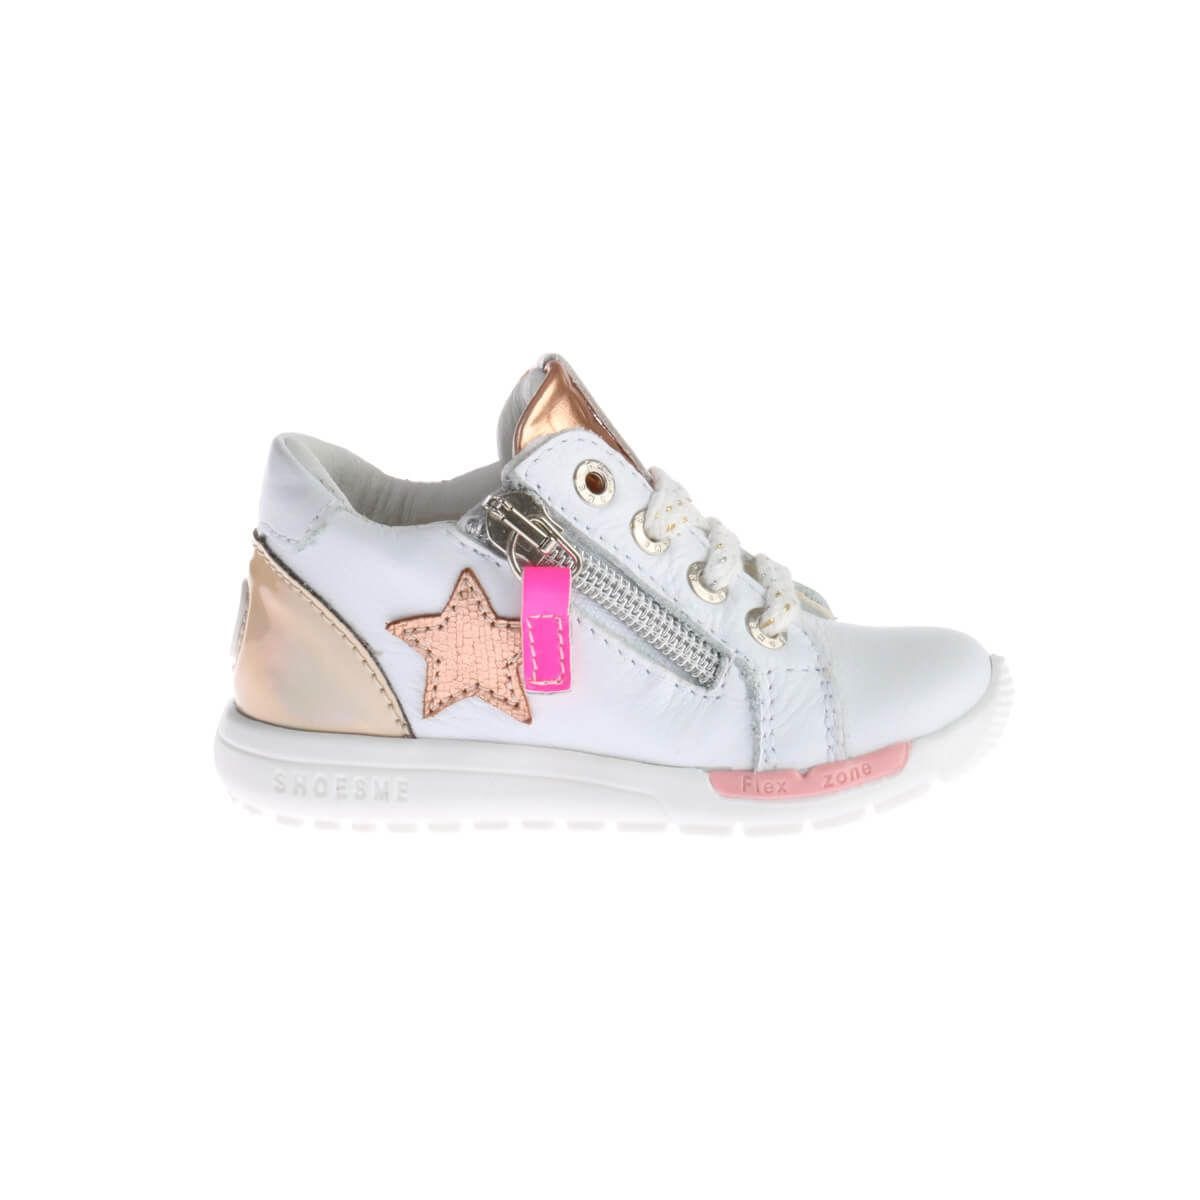 Shoesme Runflex Sneakers Wit Brons